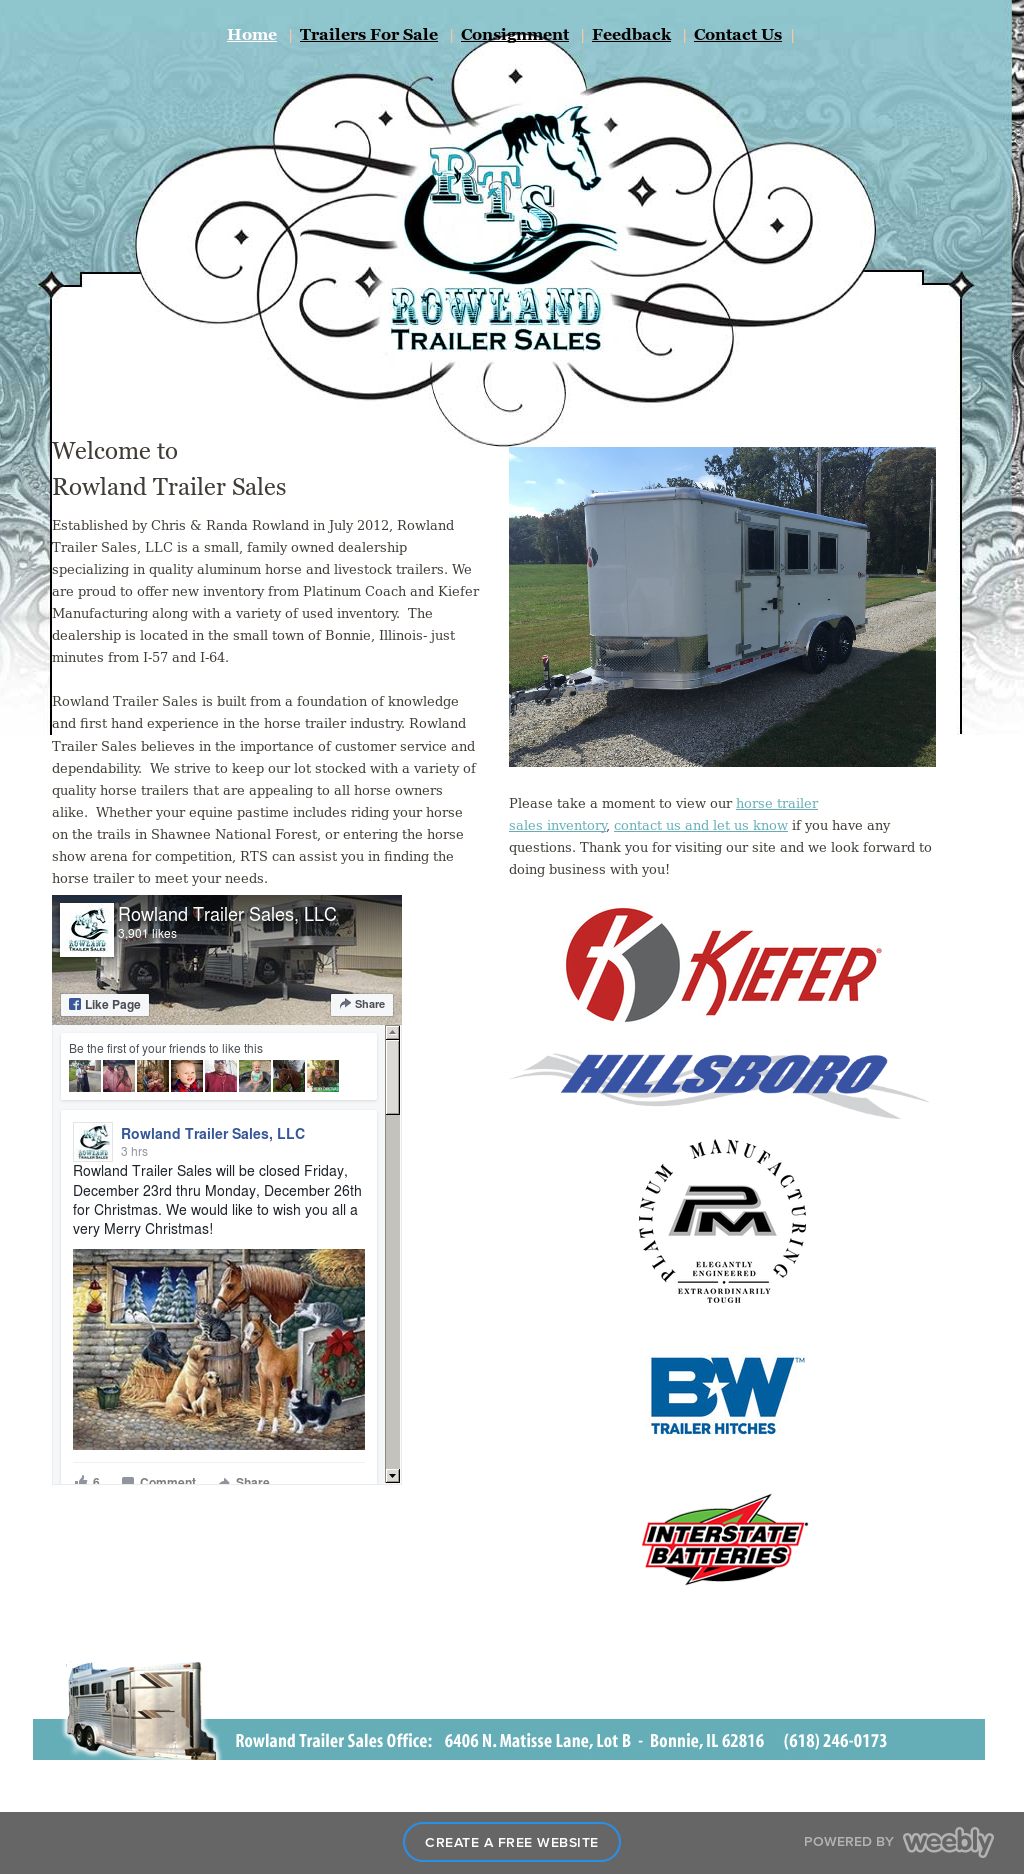 Rowland Trailer Sales Competitors, Revenue and Employees